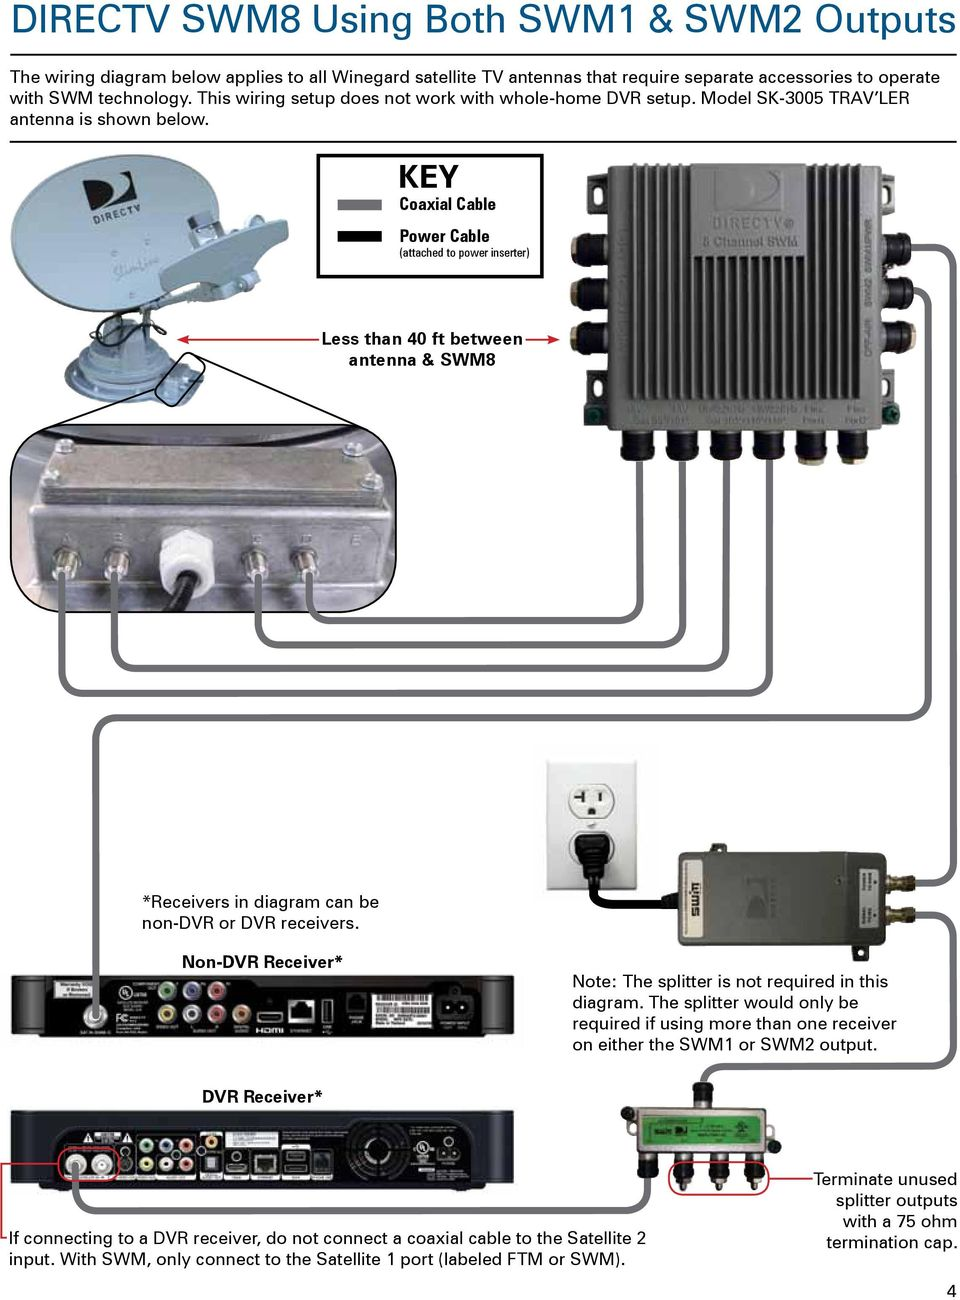 guide for using directv swm technology with winegard